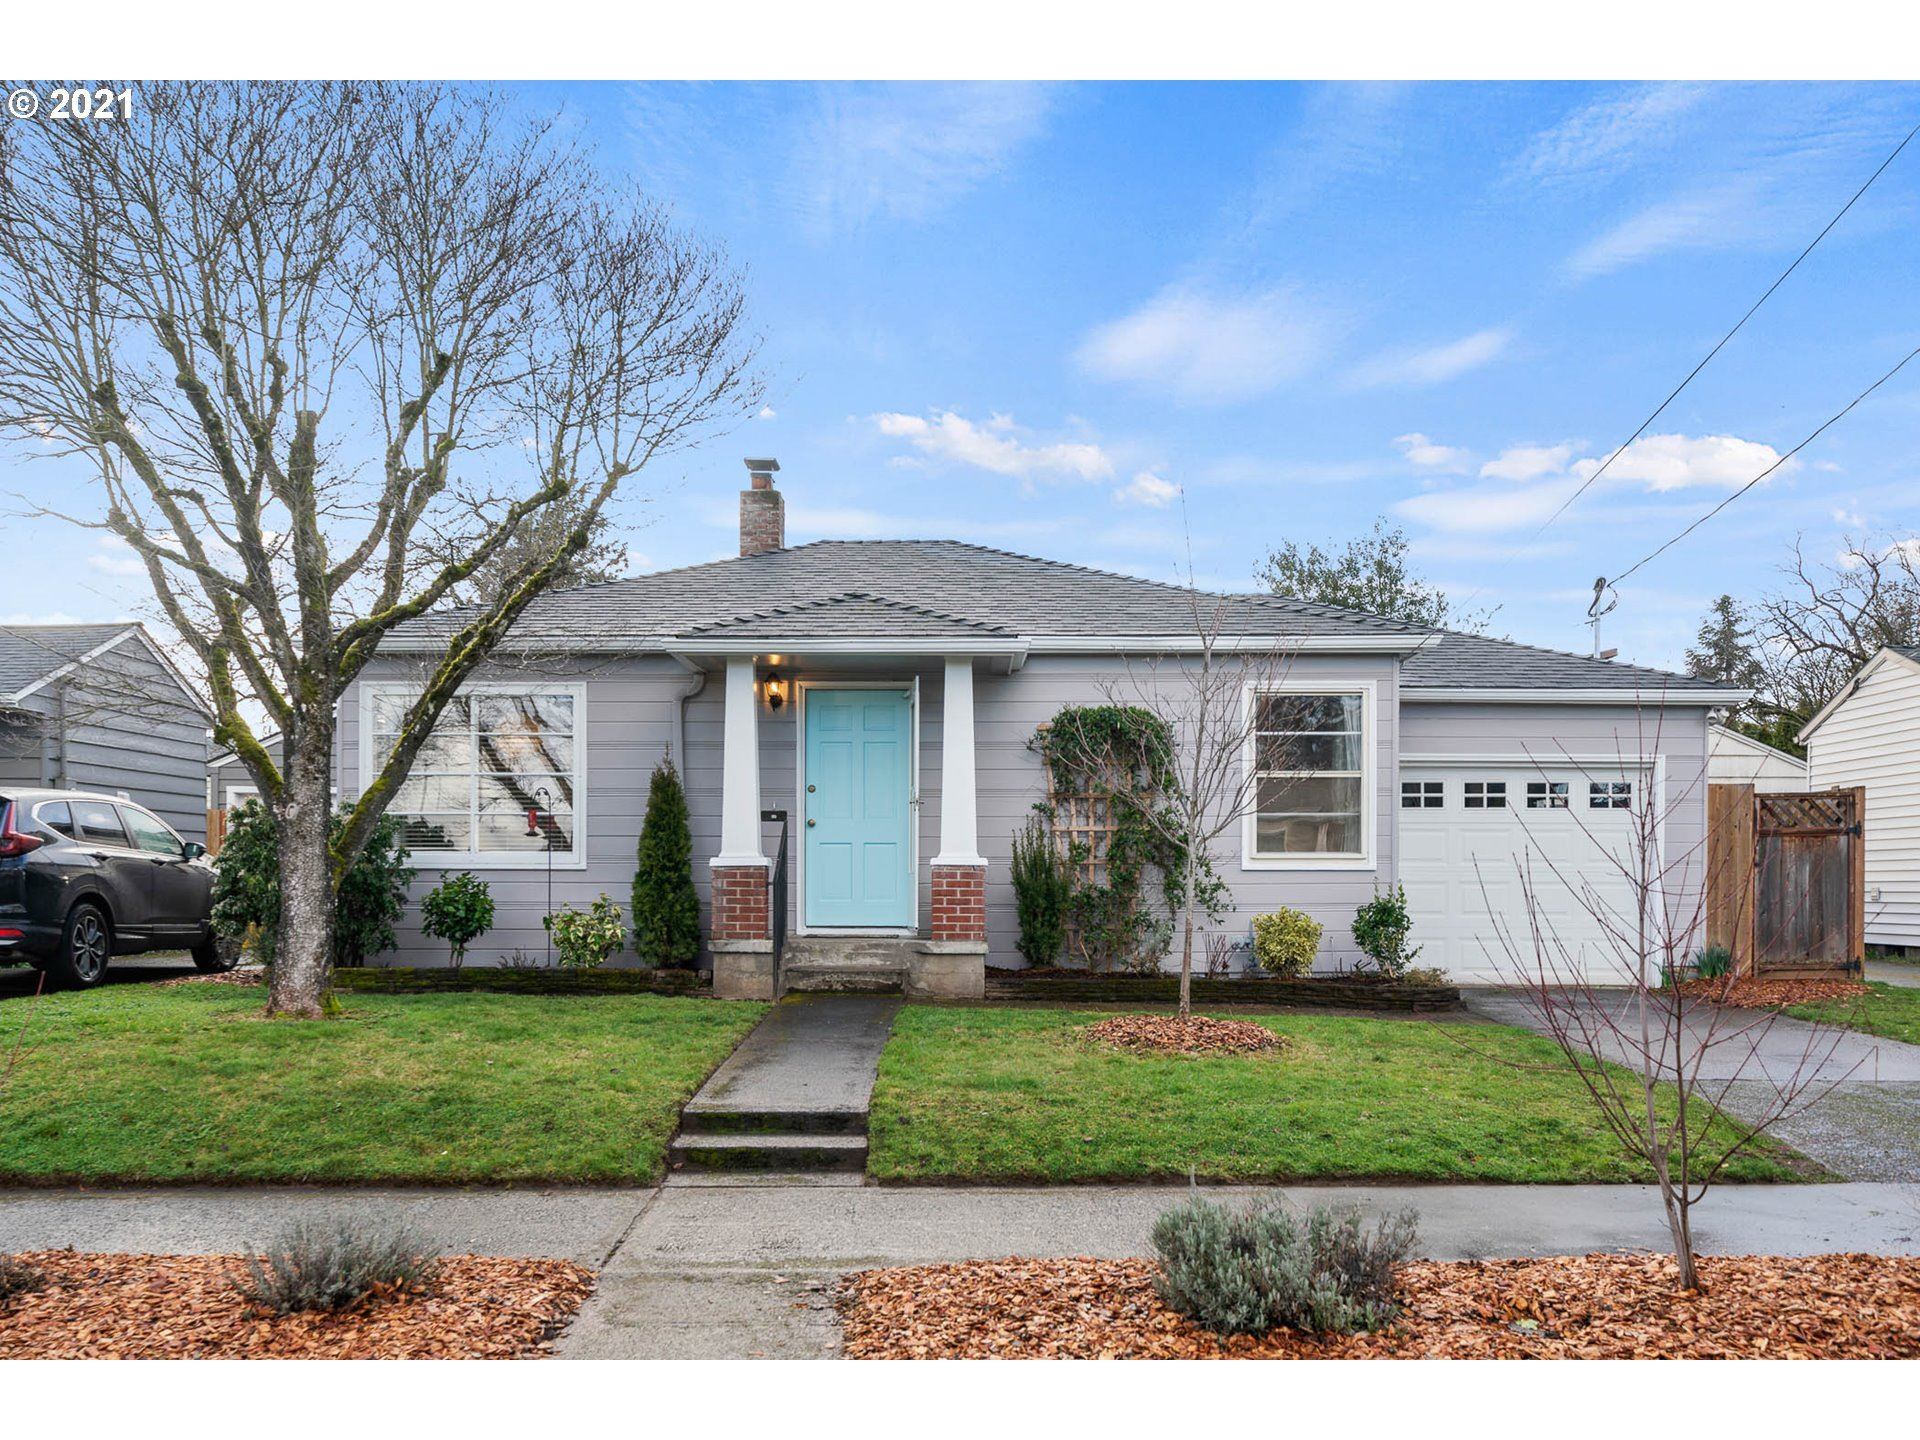 6617 SE 84TH AVE, Portland, OR 97266 - MLS#: 21669900